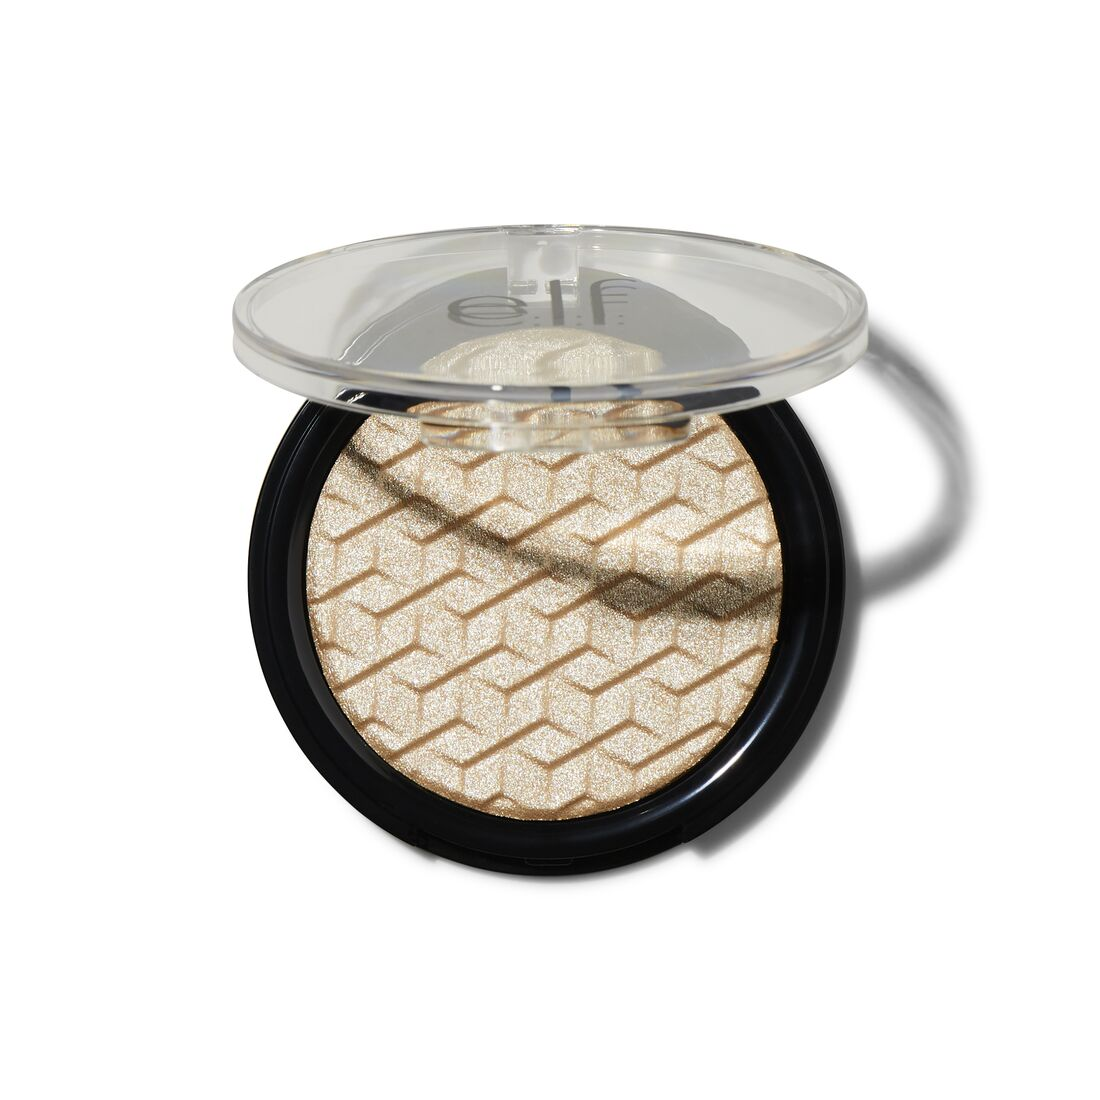 e.l.f. Metallic Flare Highlighter | HODIVA SHOP